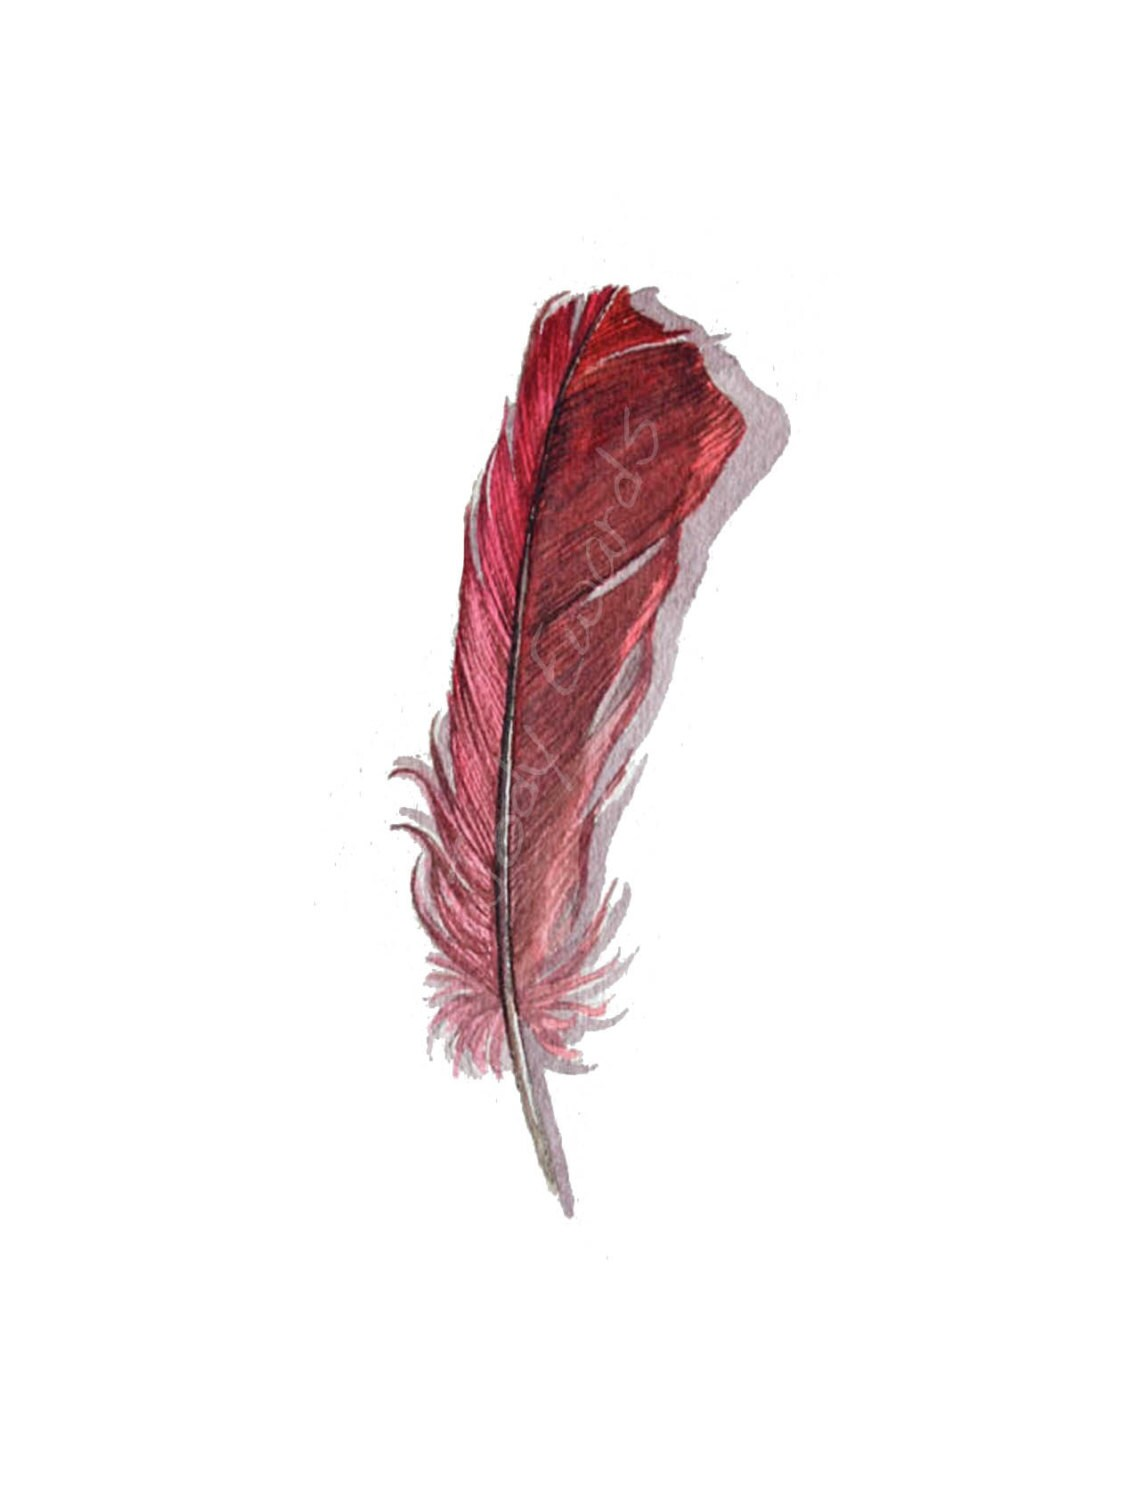 Cardinal Feather Original Watercolor Nightly Study 672 Ideas And Designs